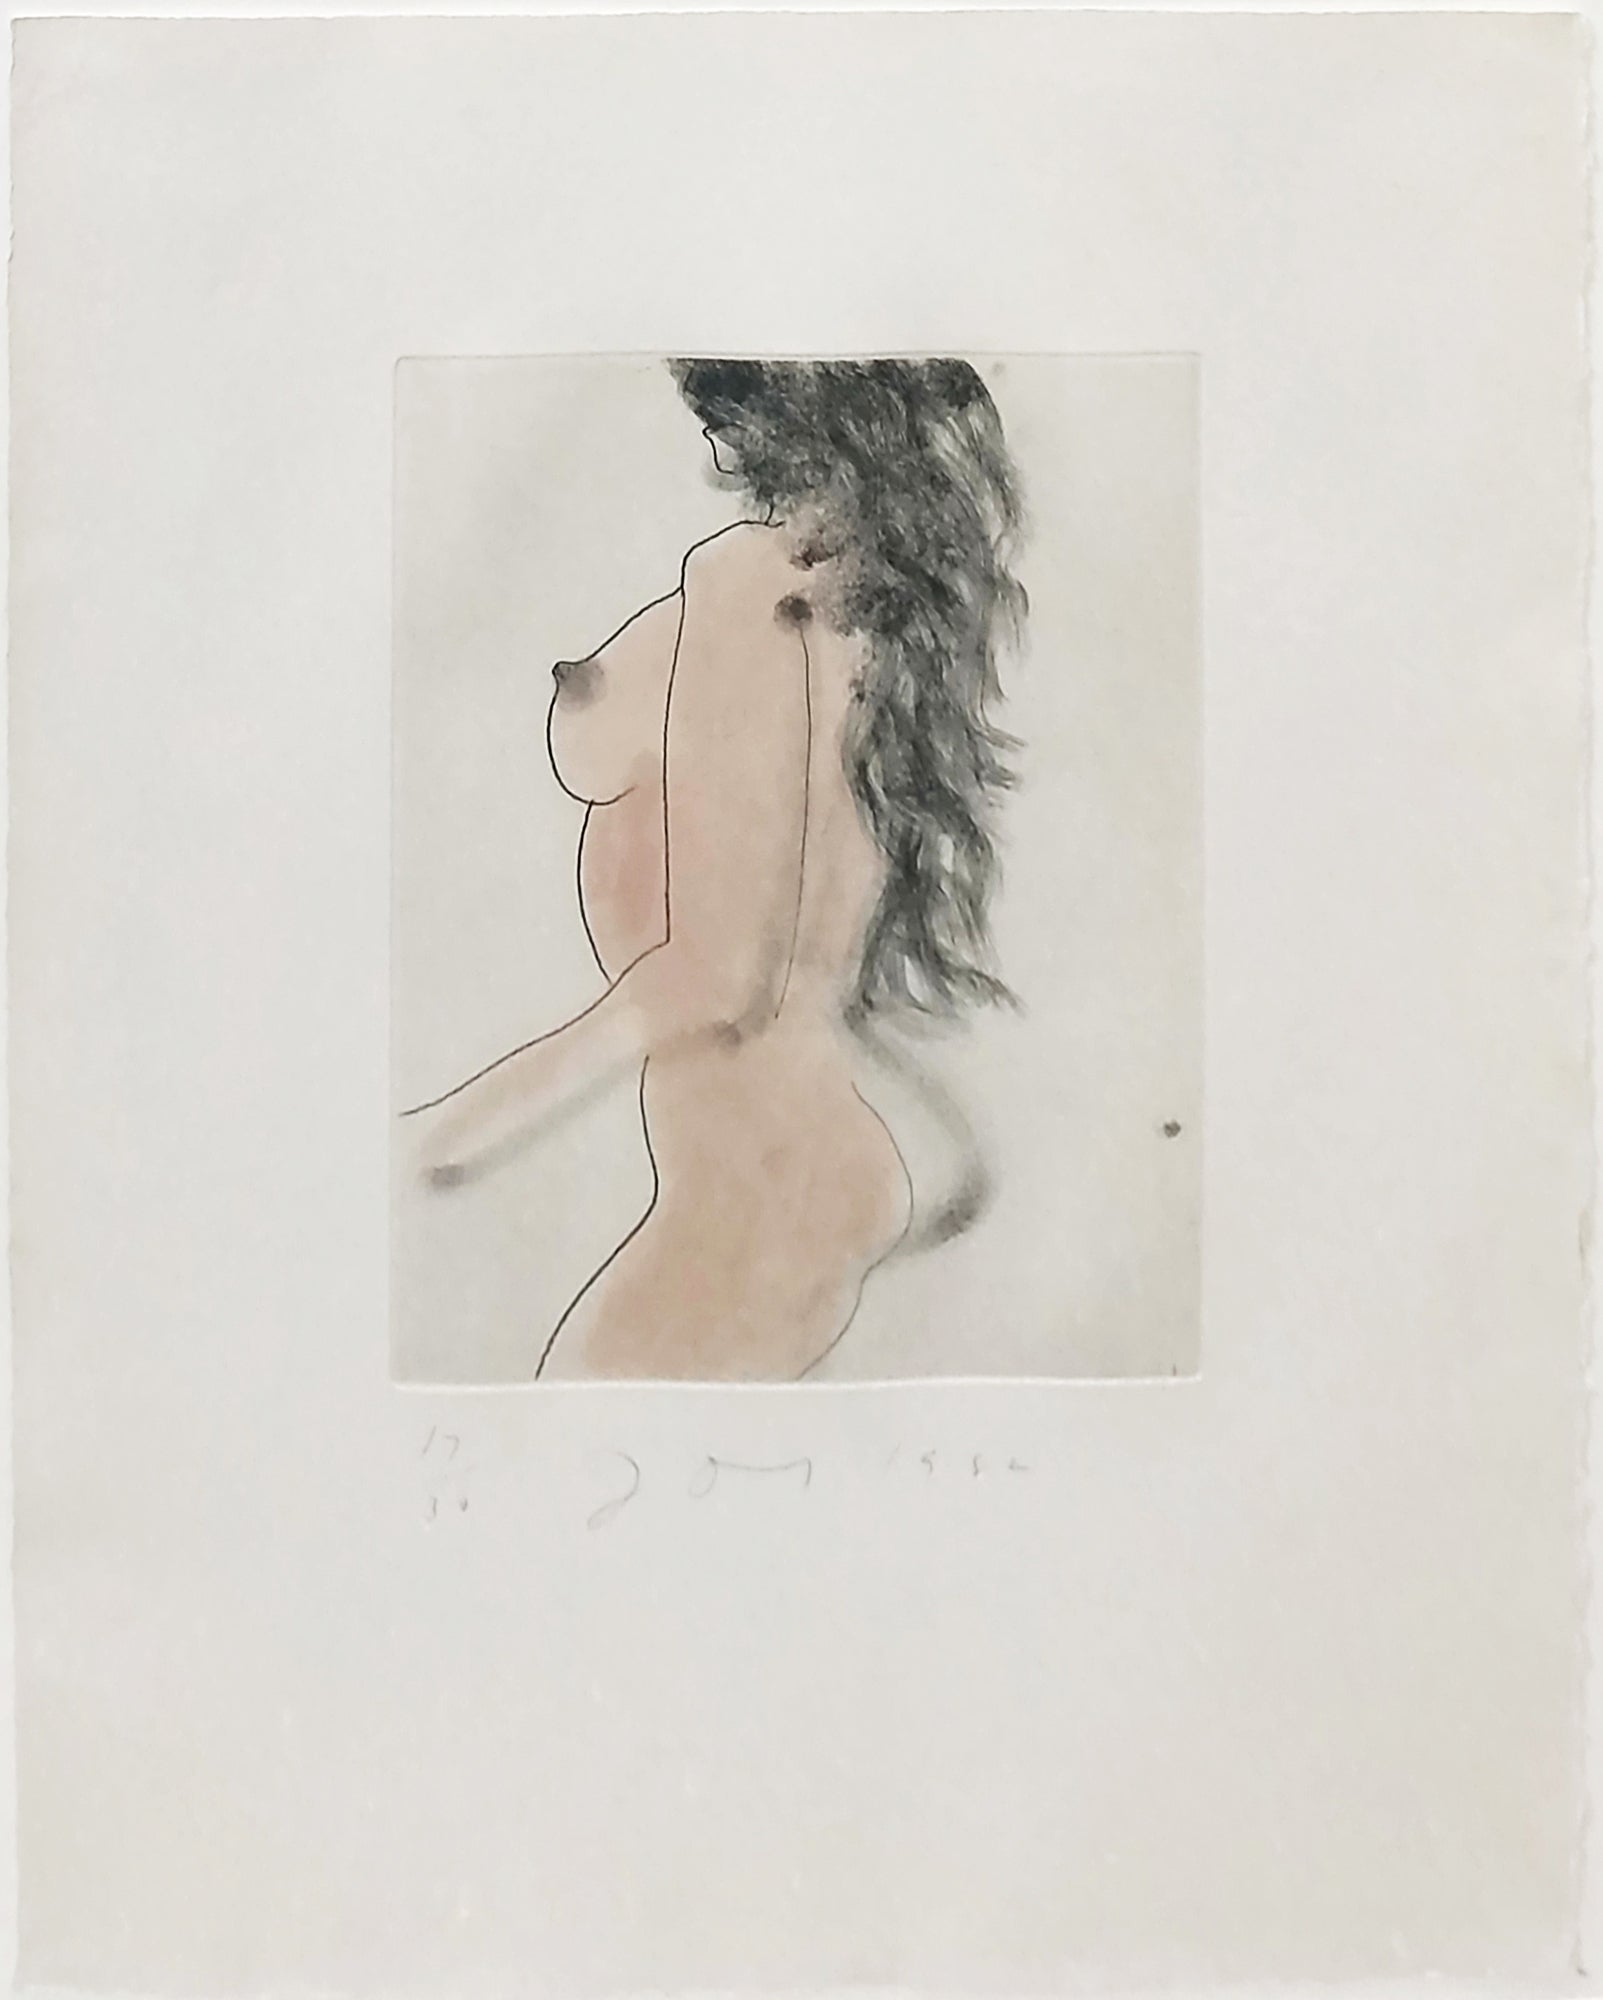 UNTITLED (FROM EIGHT LITTLE NUDES)